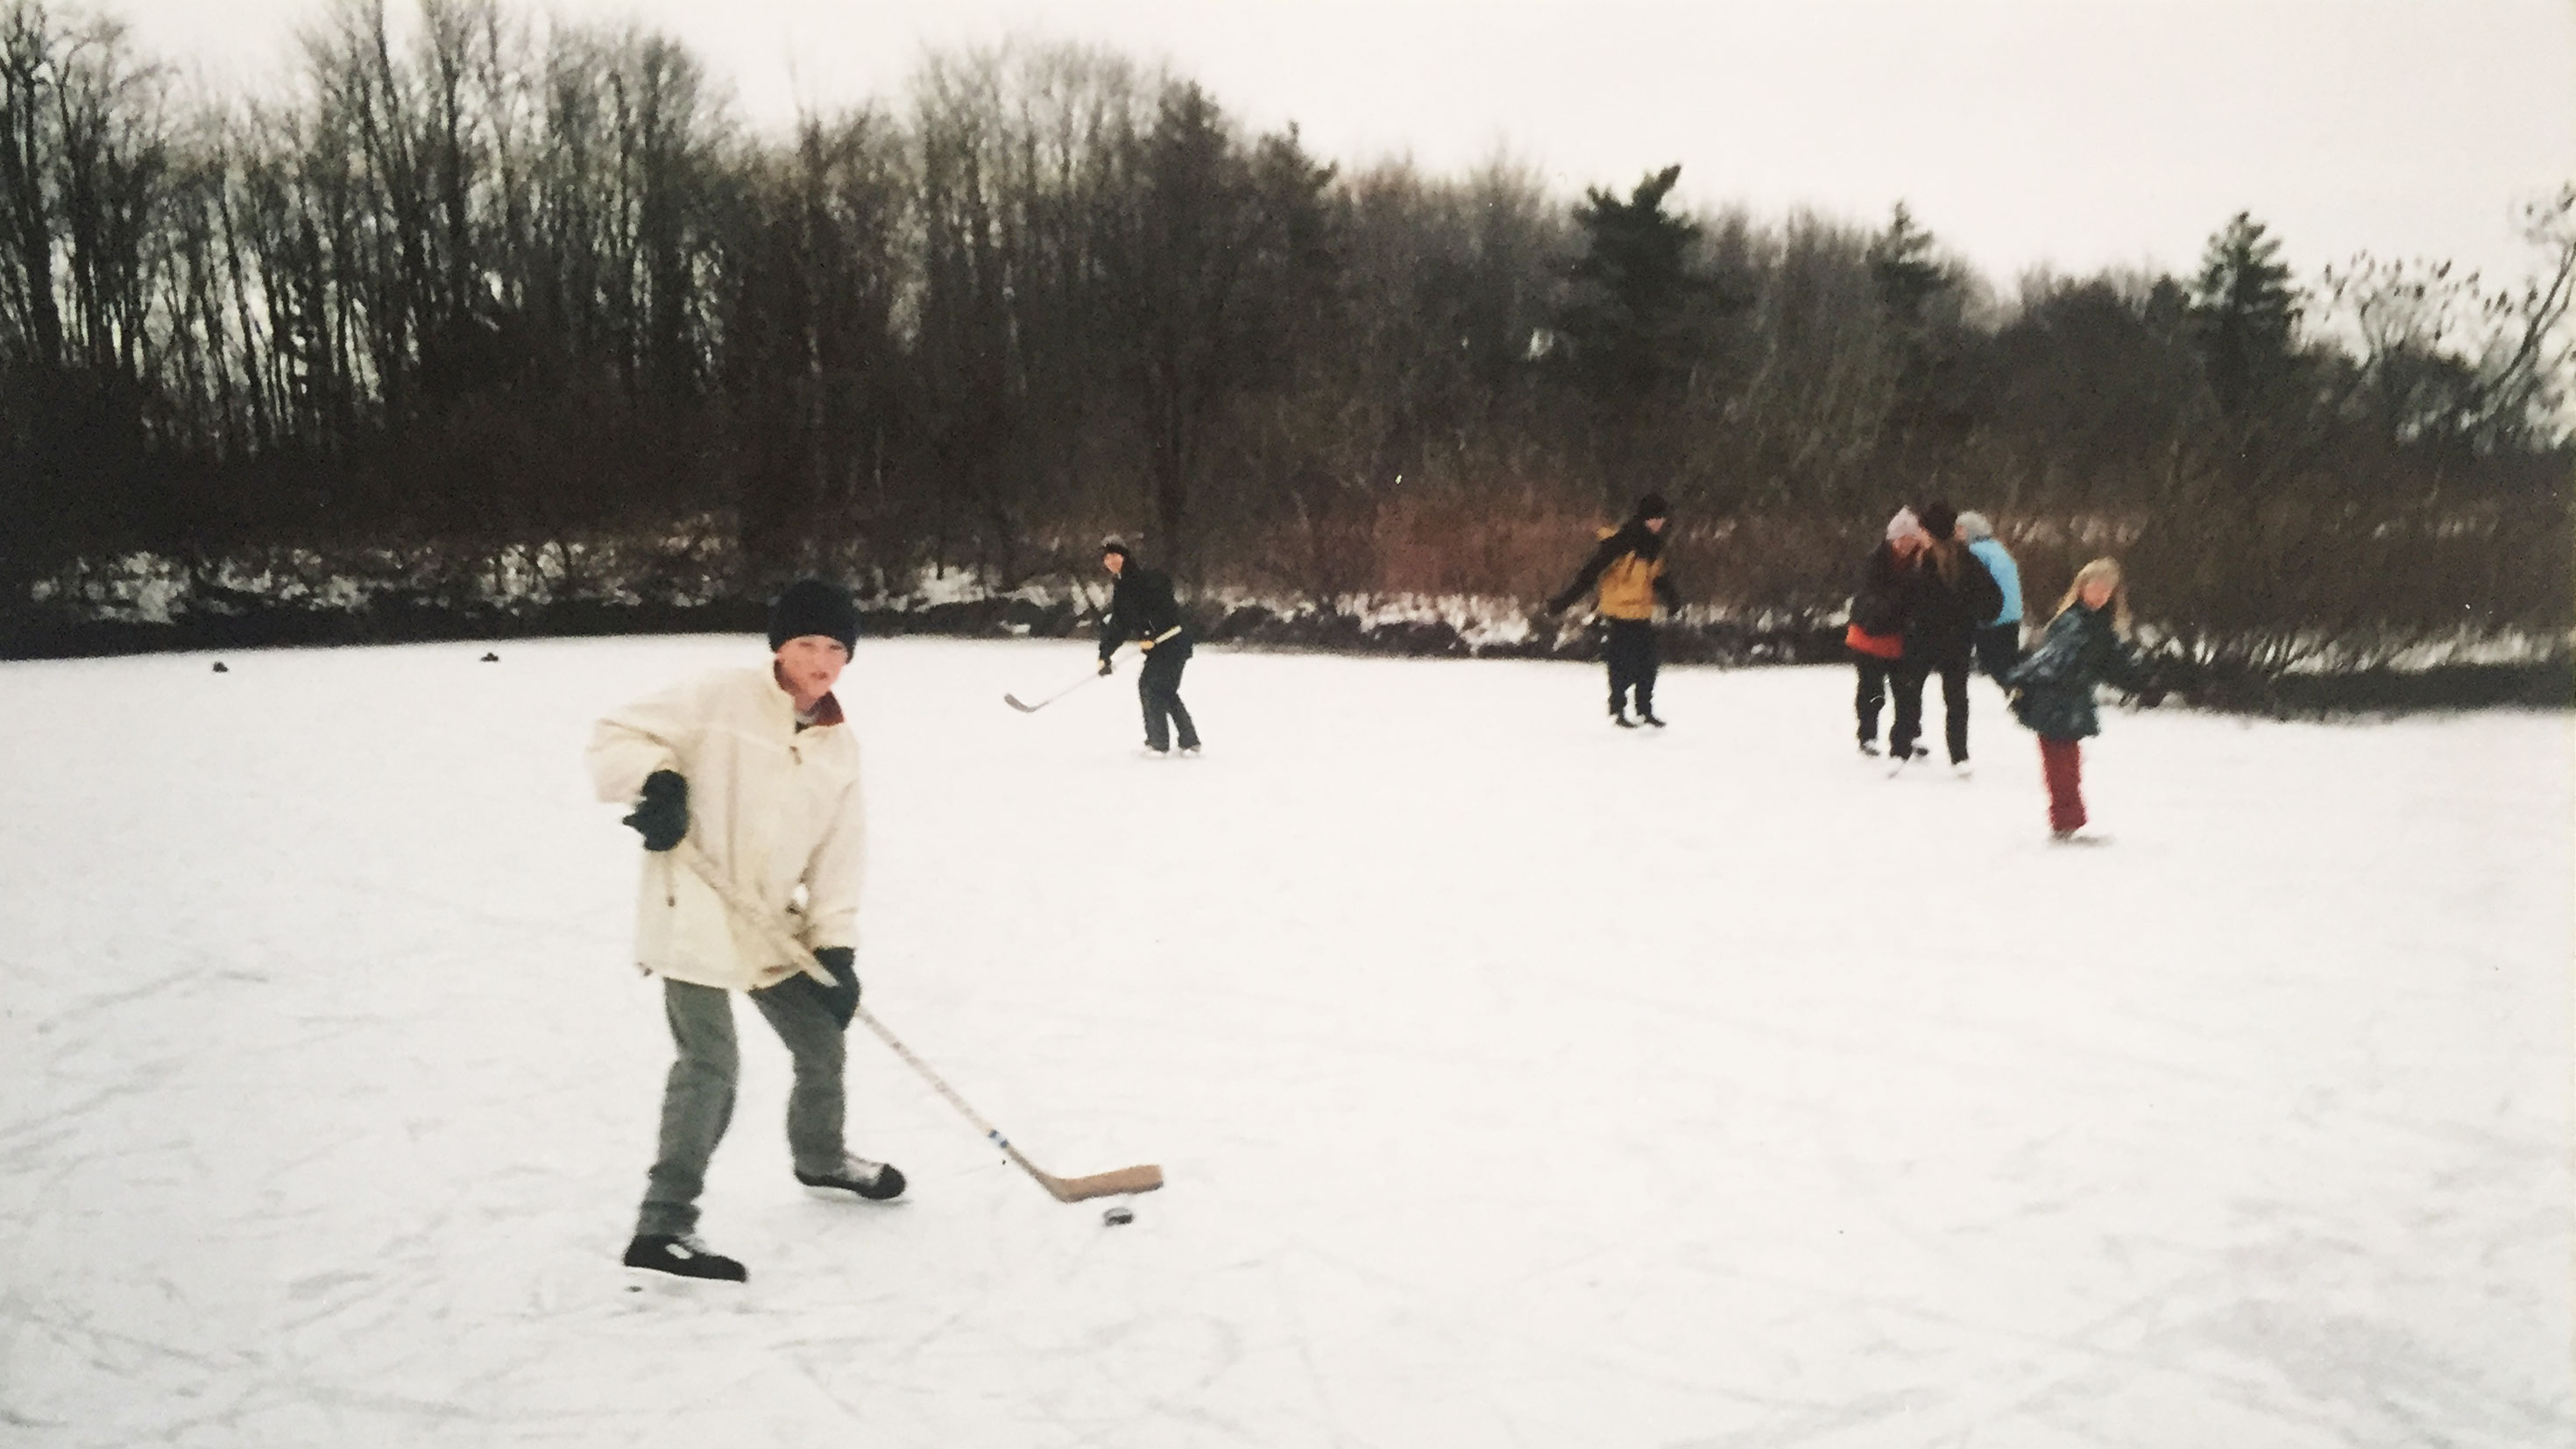 Playing hockey on the pond growing up